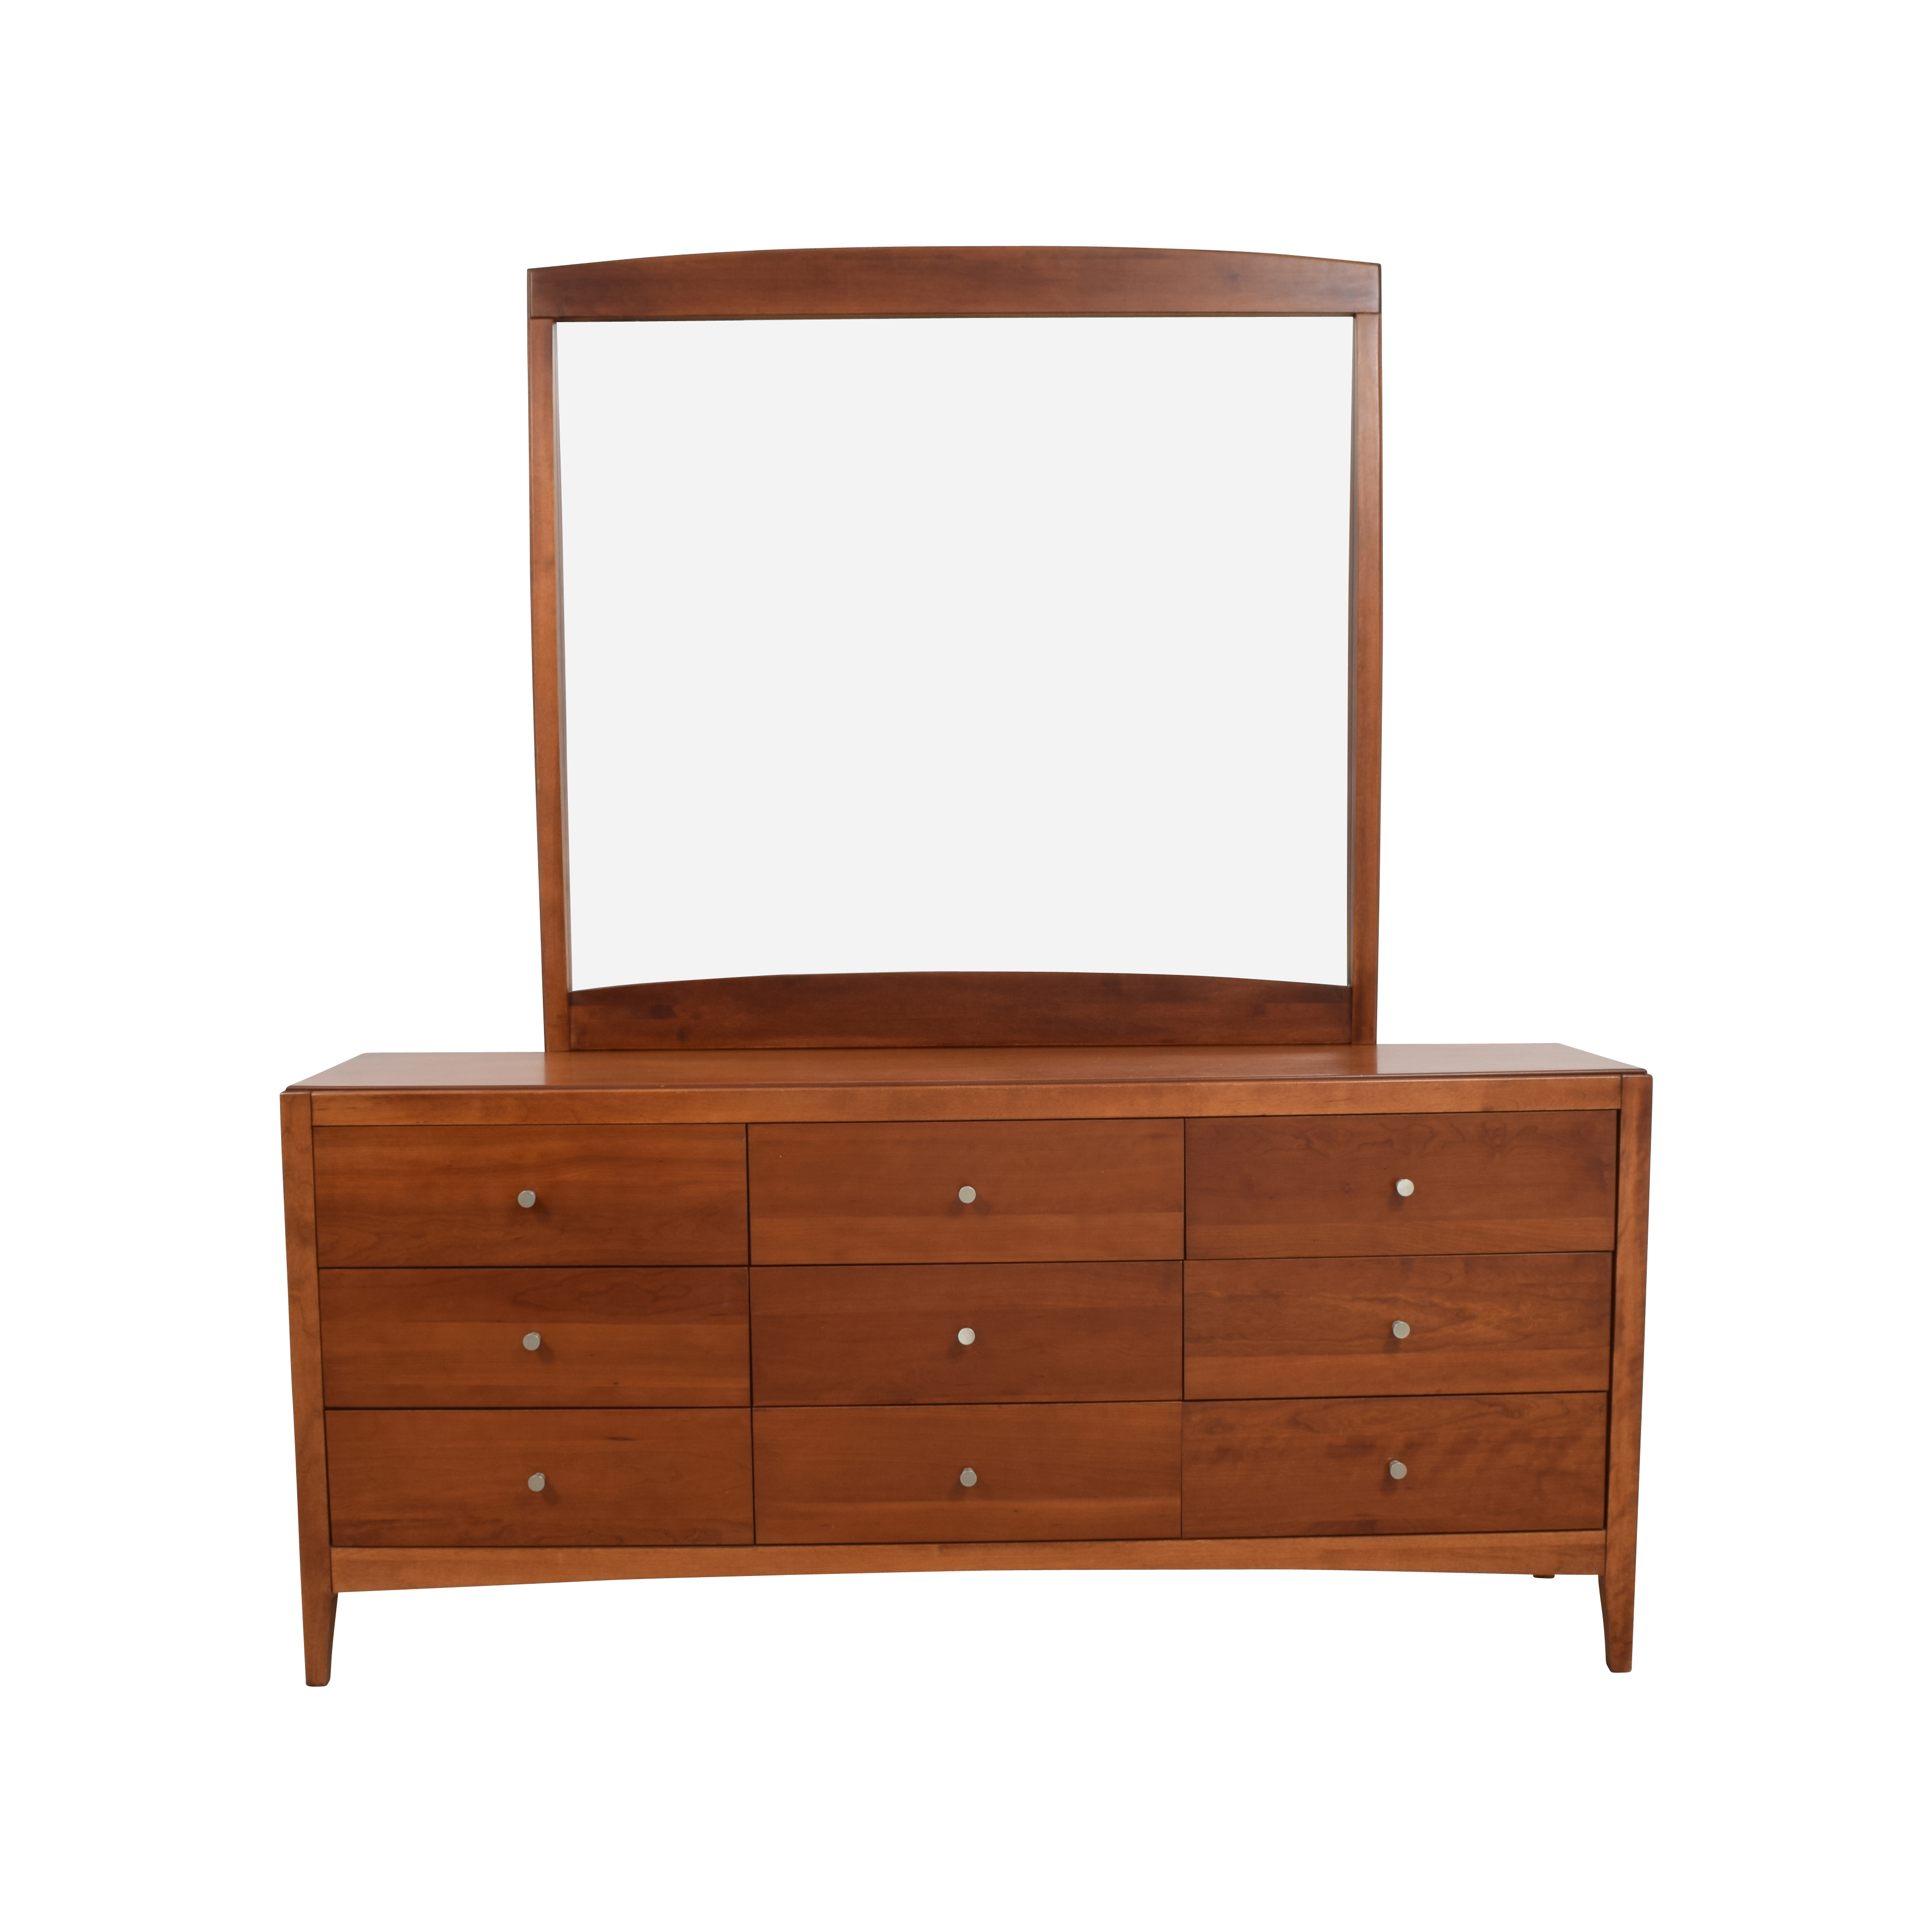 Macys Macys Solid Wood 9-Drawer Dresser With Mirror dimensions